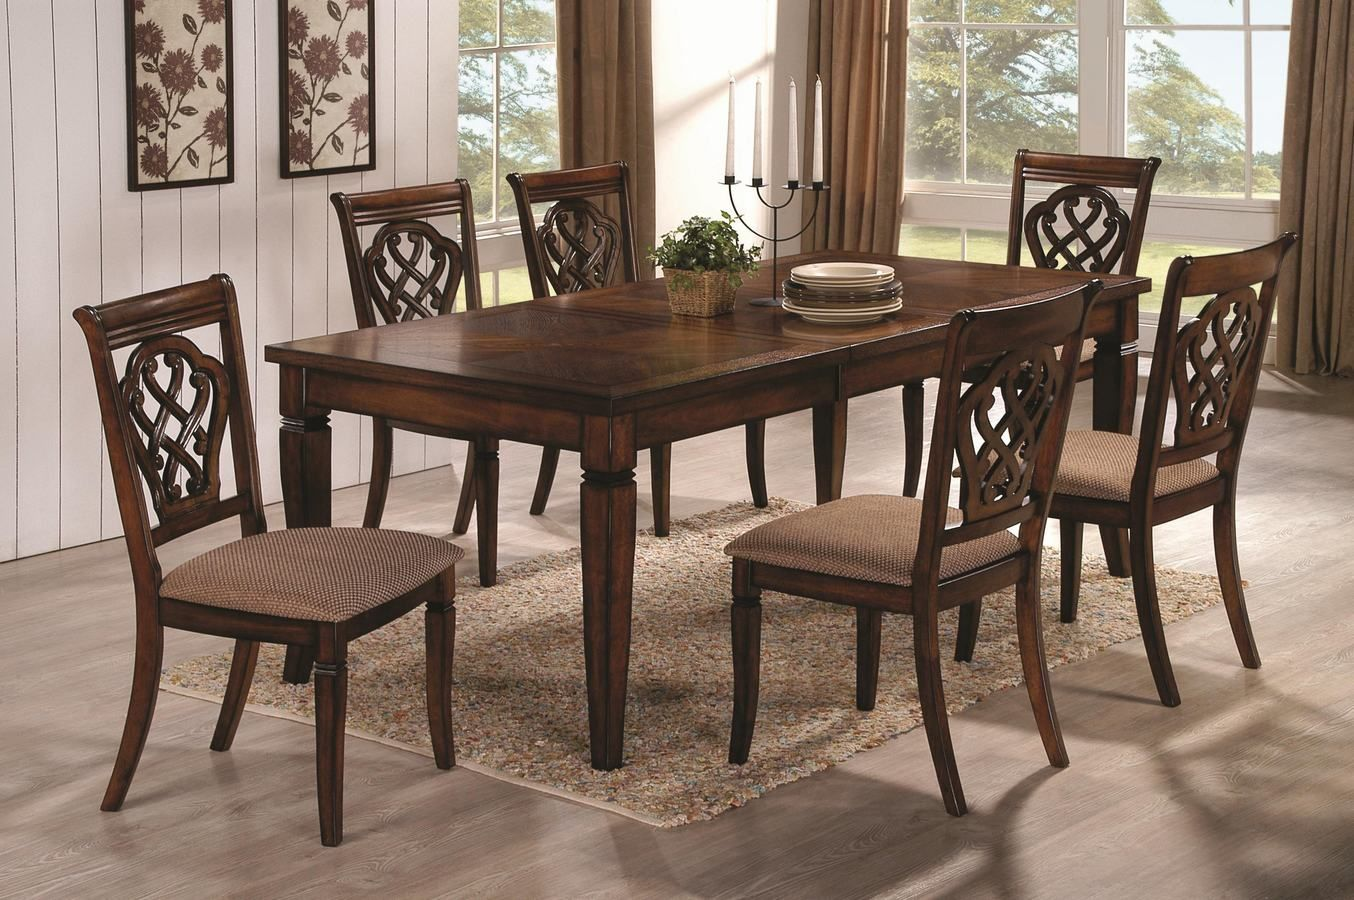 Coaster 103391 92 Dining Room Set By The Chicago Furniture Store Oak Dining Table Transitional Dining Tables Dining Room Sets